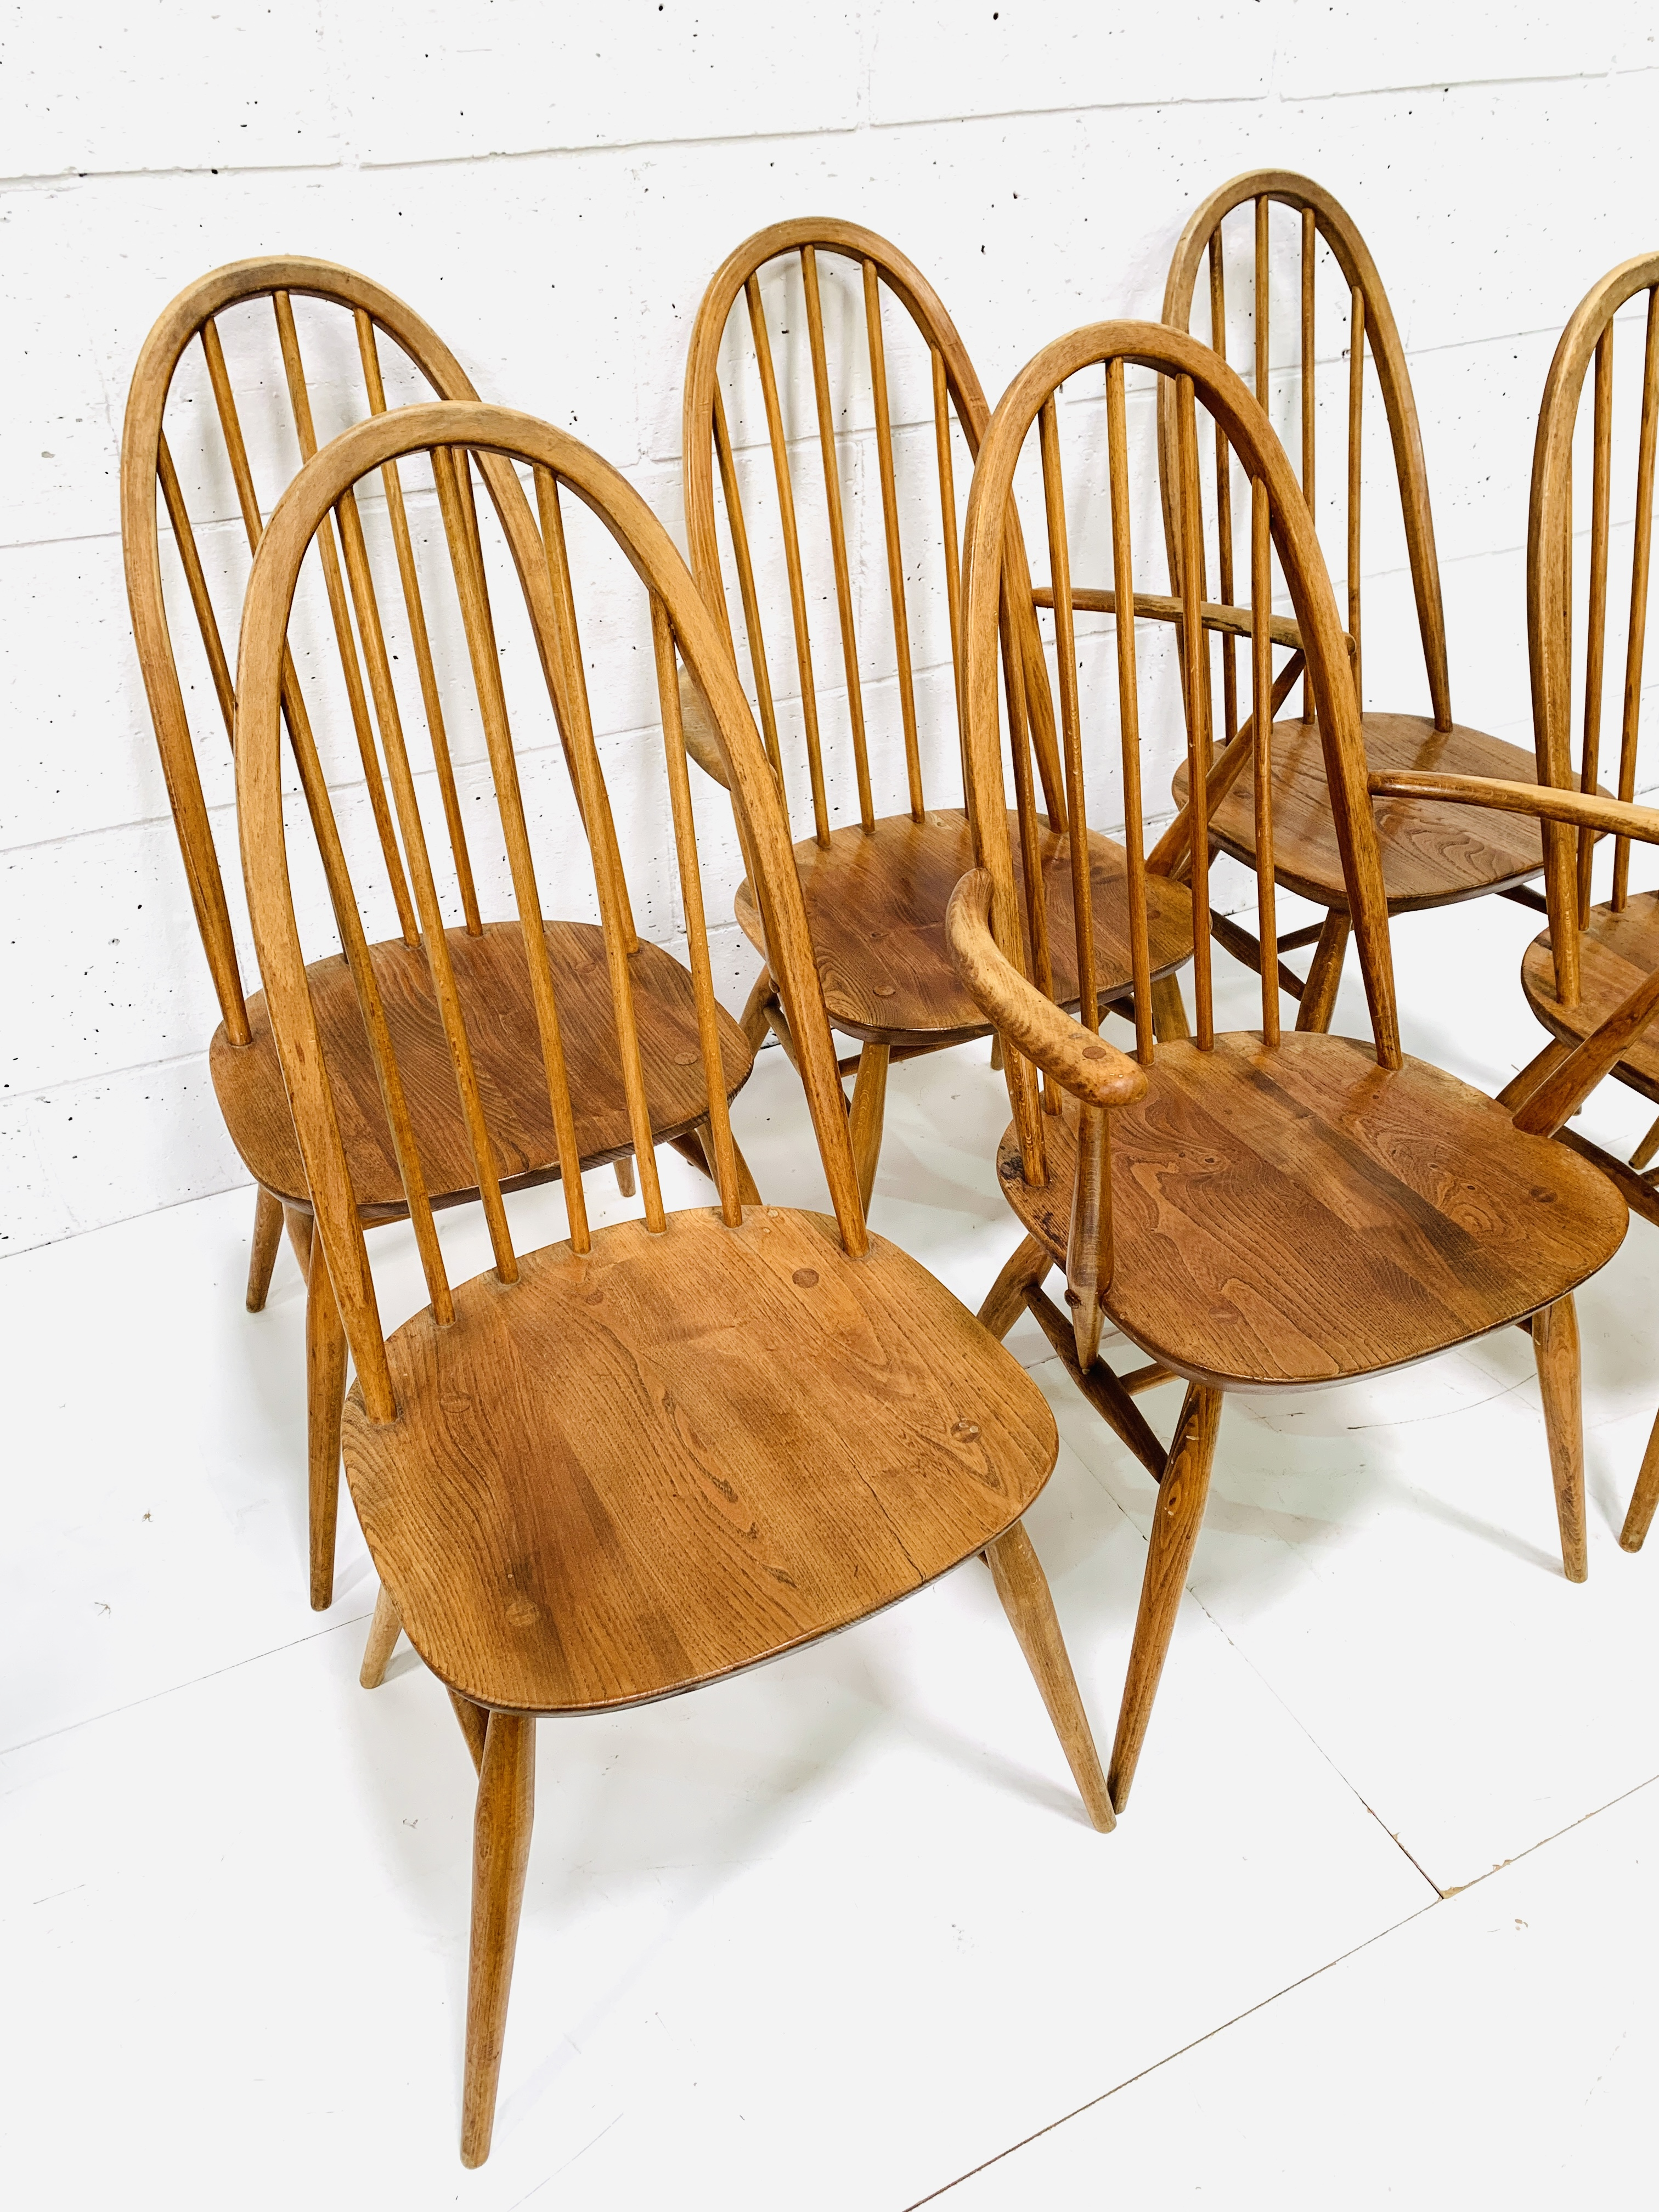 Set of six (4 + 2) Ercol high rail back dining chairs - Image 5 of 5